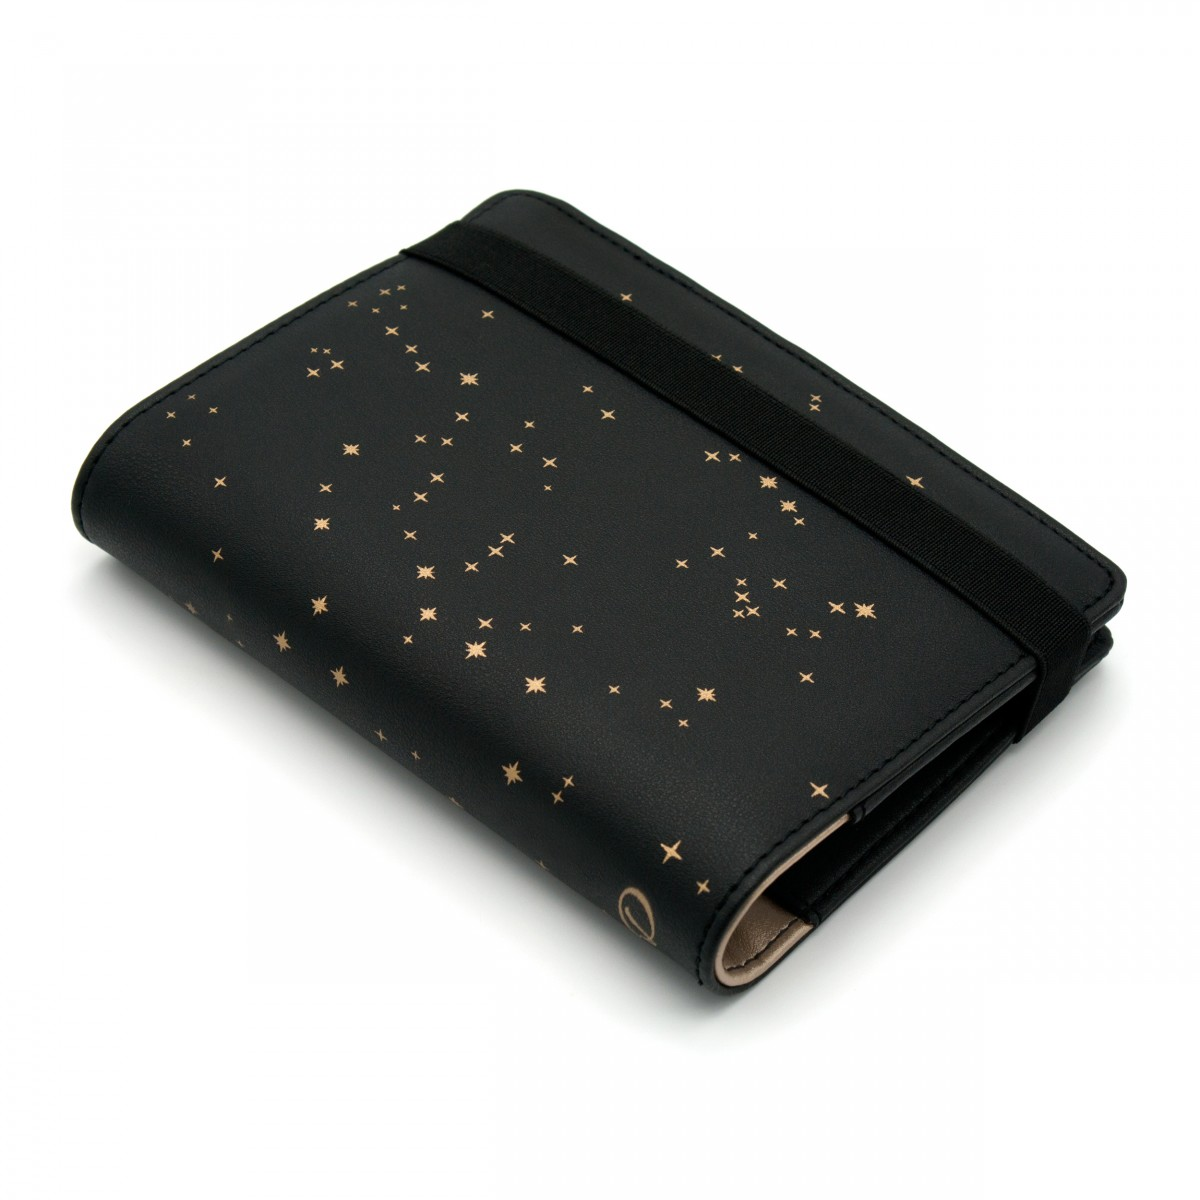 DISCAGENDA CONSTELLATIONS COVER PERSONAL ELASTIC STRAP CLOSURE